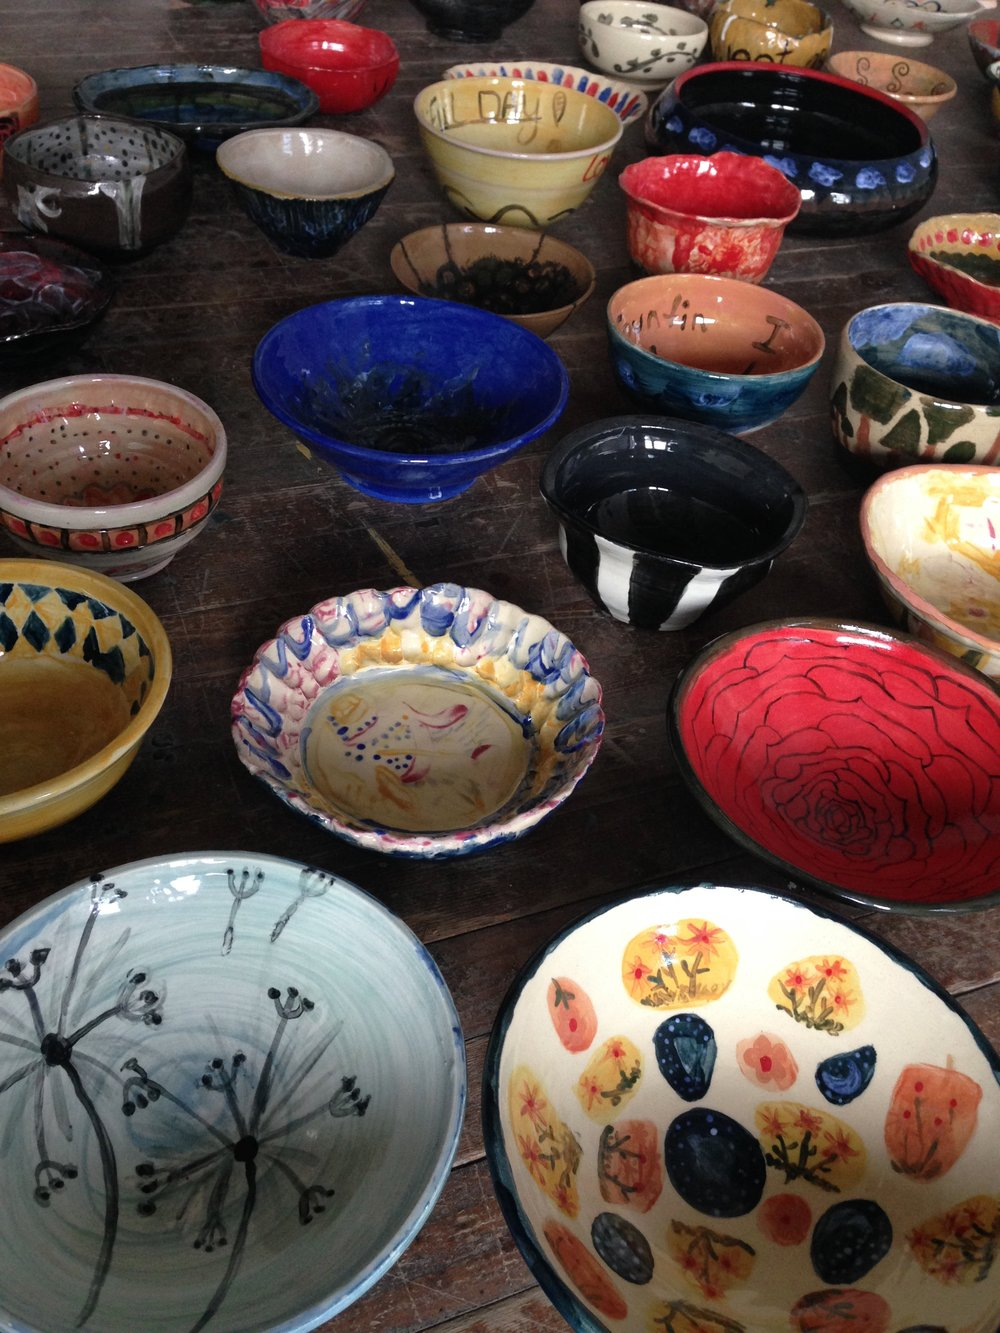 JOIN USat Pioneer Courthouse  Square on September 23, 2018 - Celebrate with us at Pioneer Courthouse Square on September 23, 2018 and meet the many participants, sponsors, and volunteers!The hand-painted bowls will be available for sale, and we will contribute all  proceeds to house fellow citizens. There will be music, poetry, and opportunities to learn more through community liaisons who will highlight practical considerations that may help build genuine connections between diverse communities.